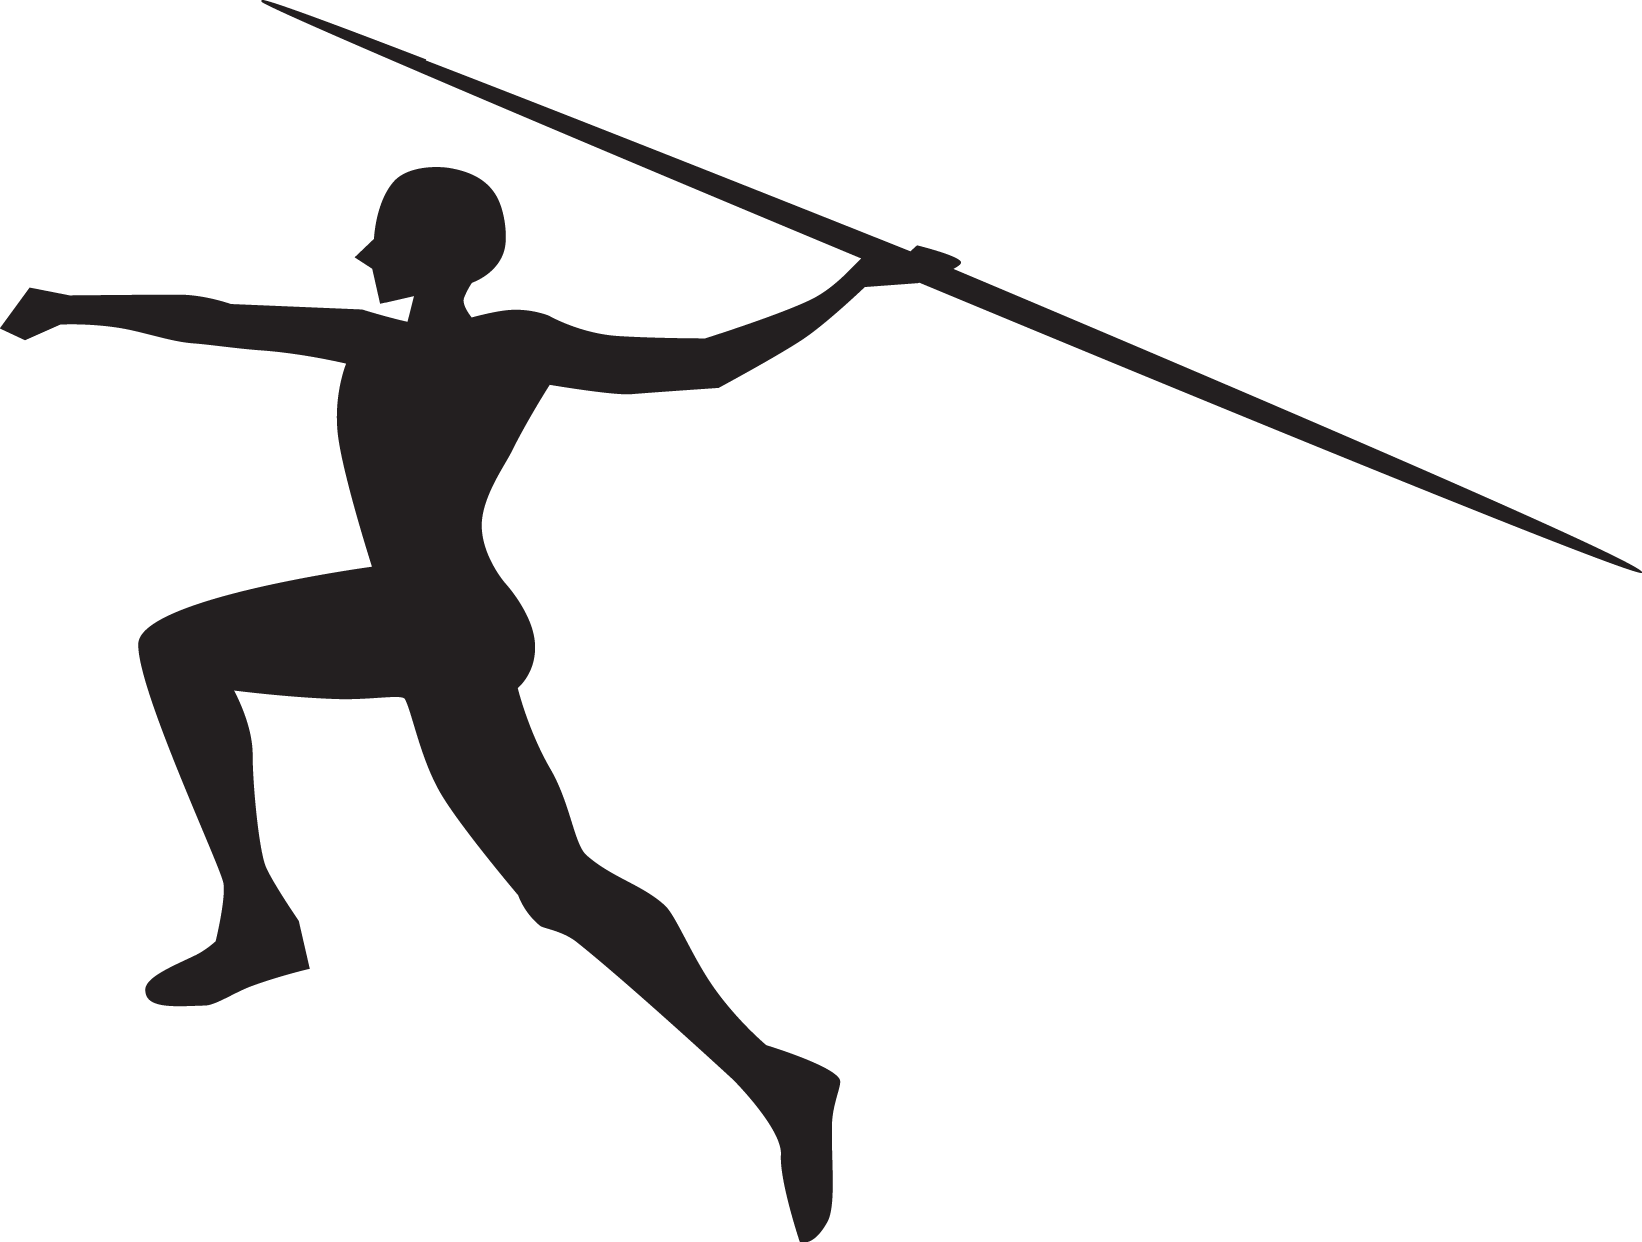 Javelin throw Silhouette Sports Track & Field.